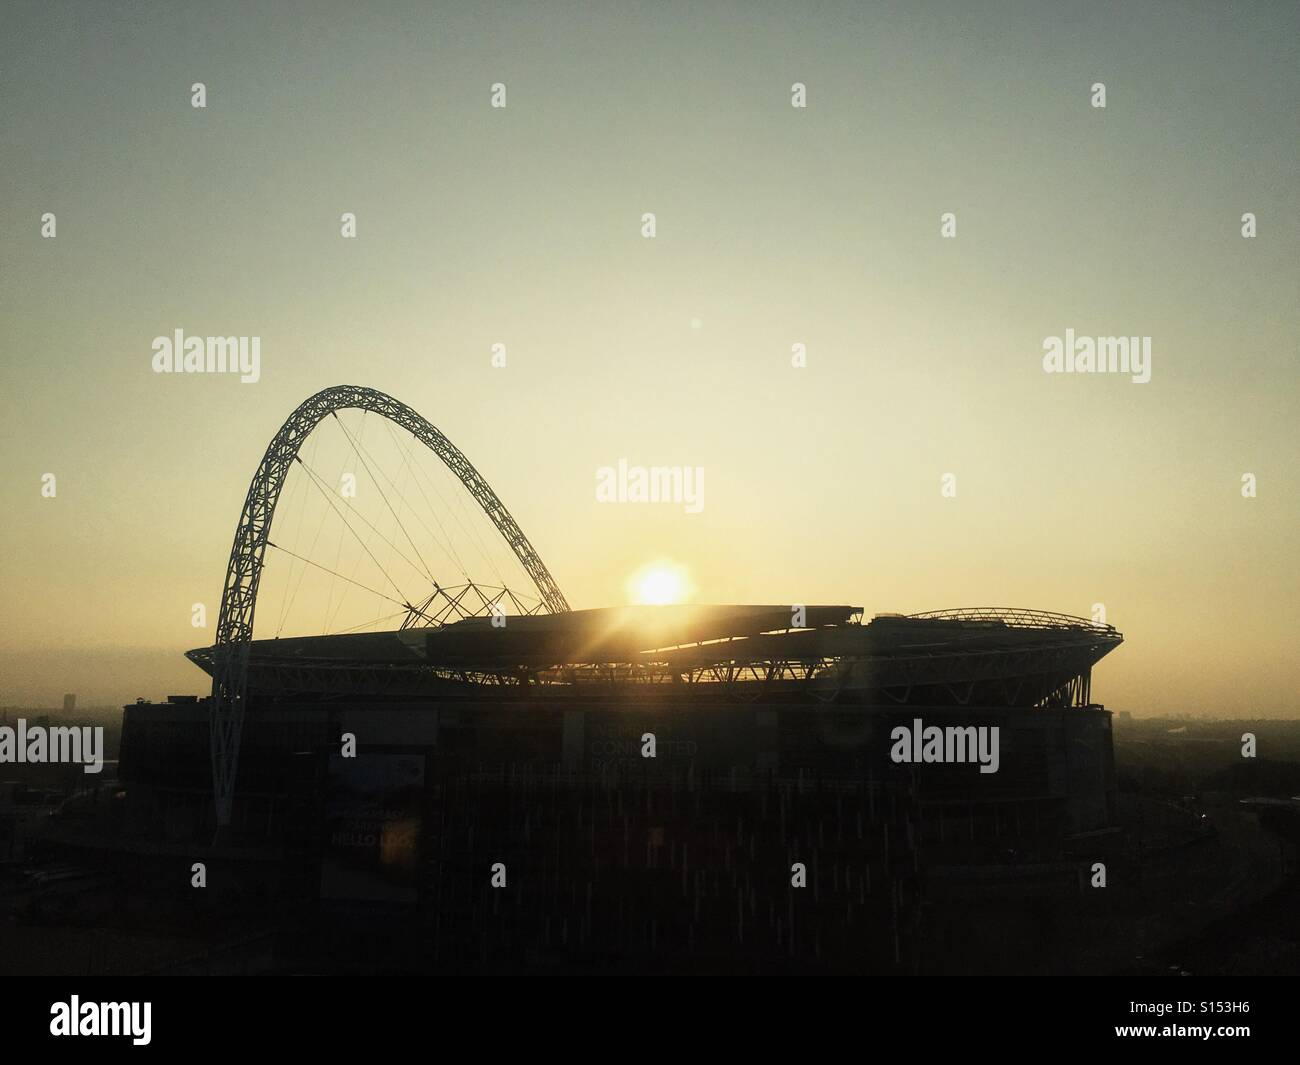 Sunrise over Wembley Stadium. - Stock Image